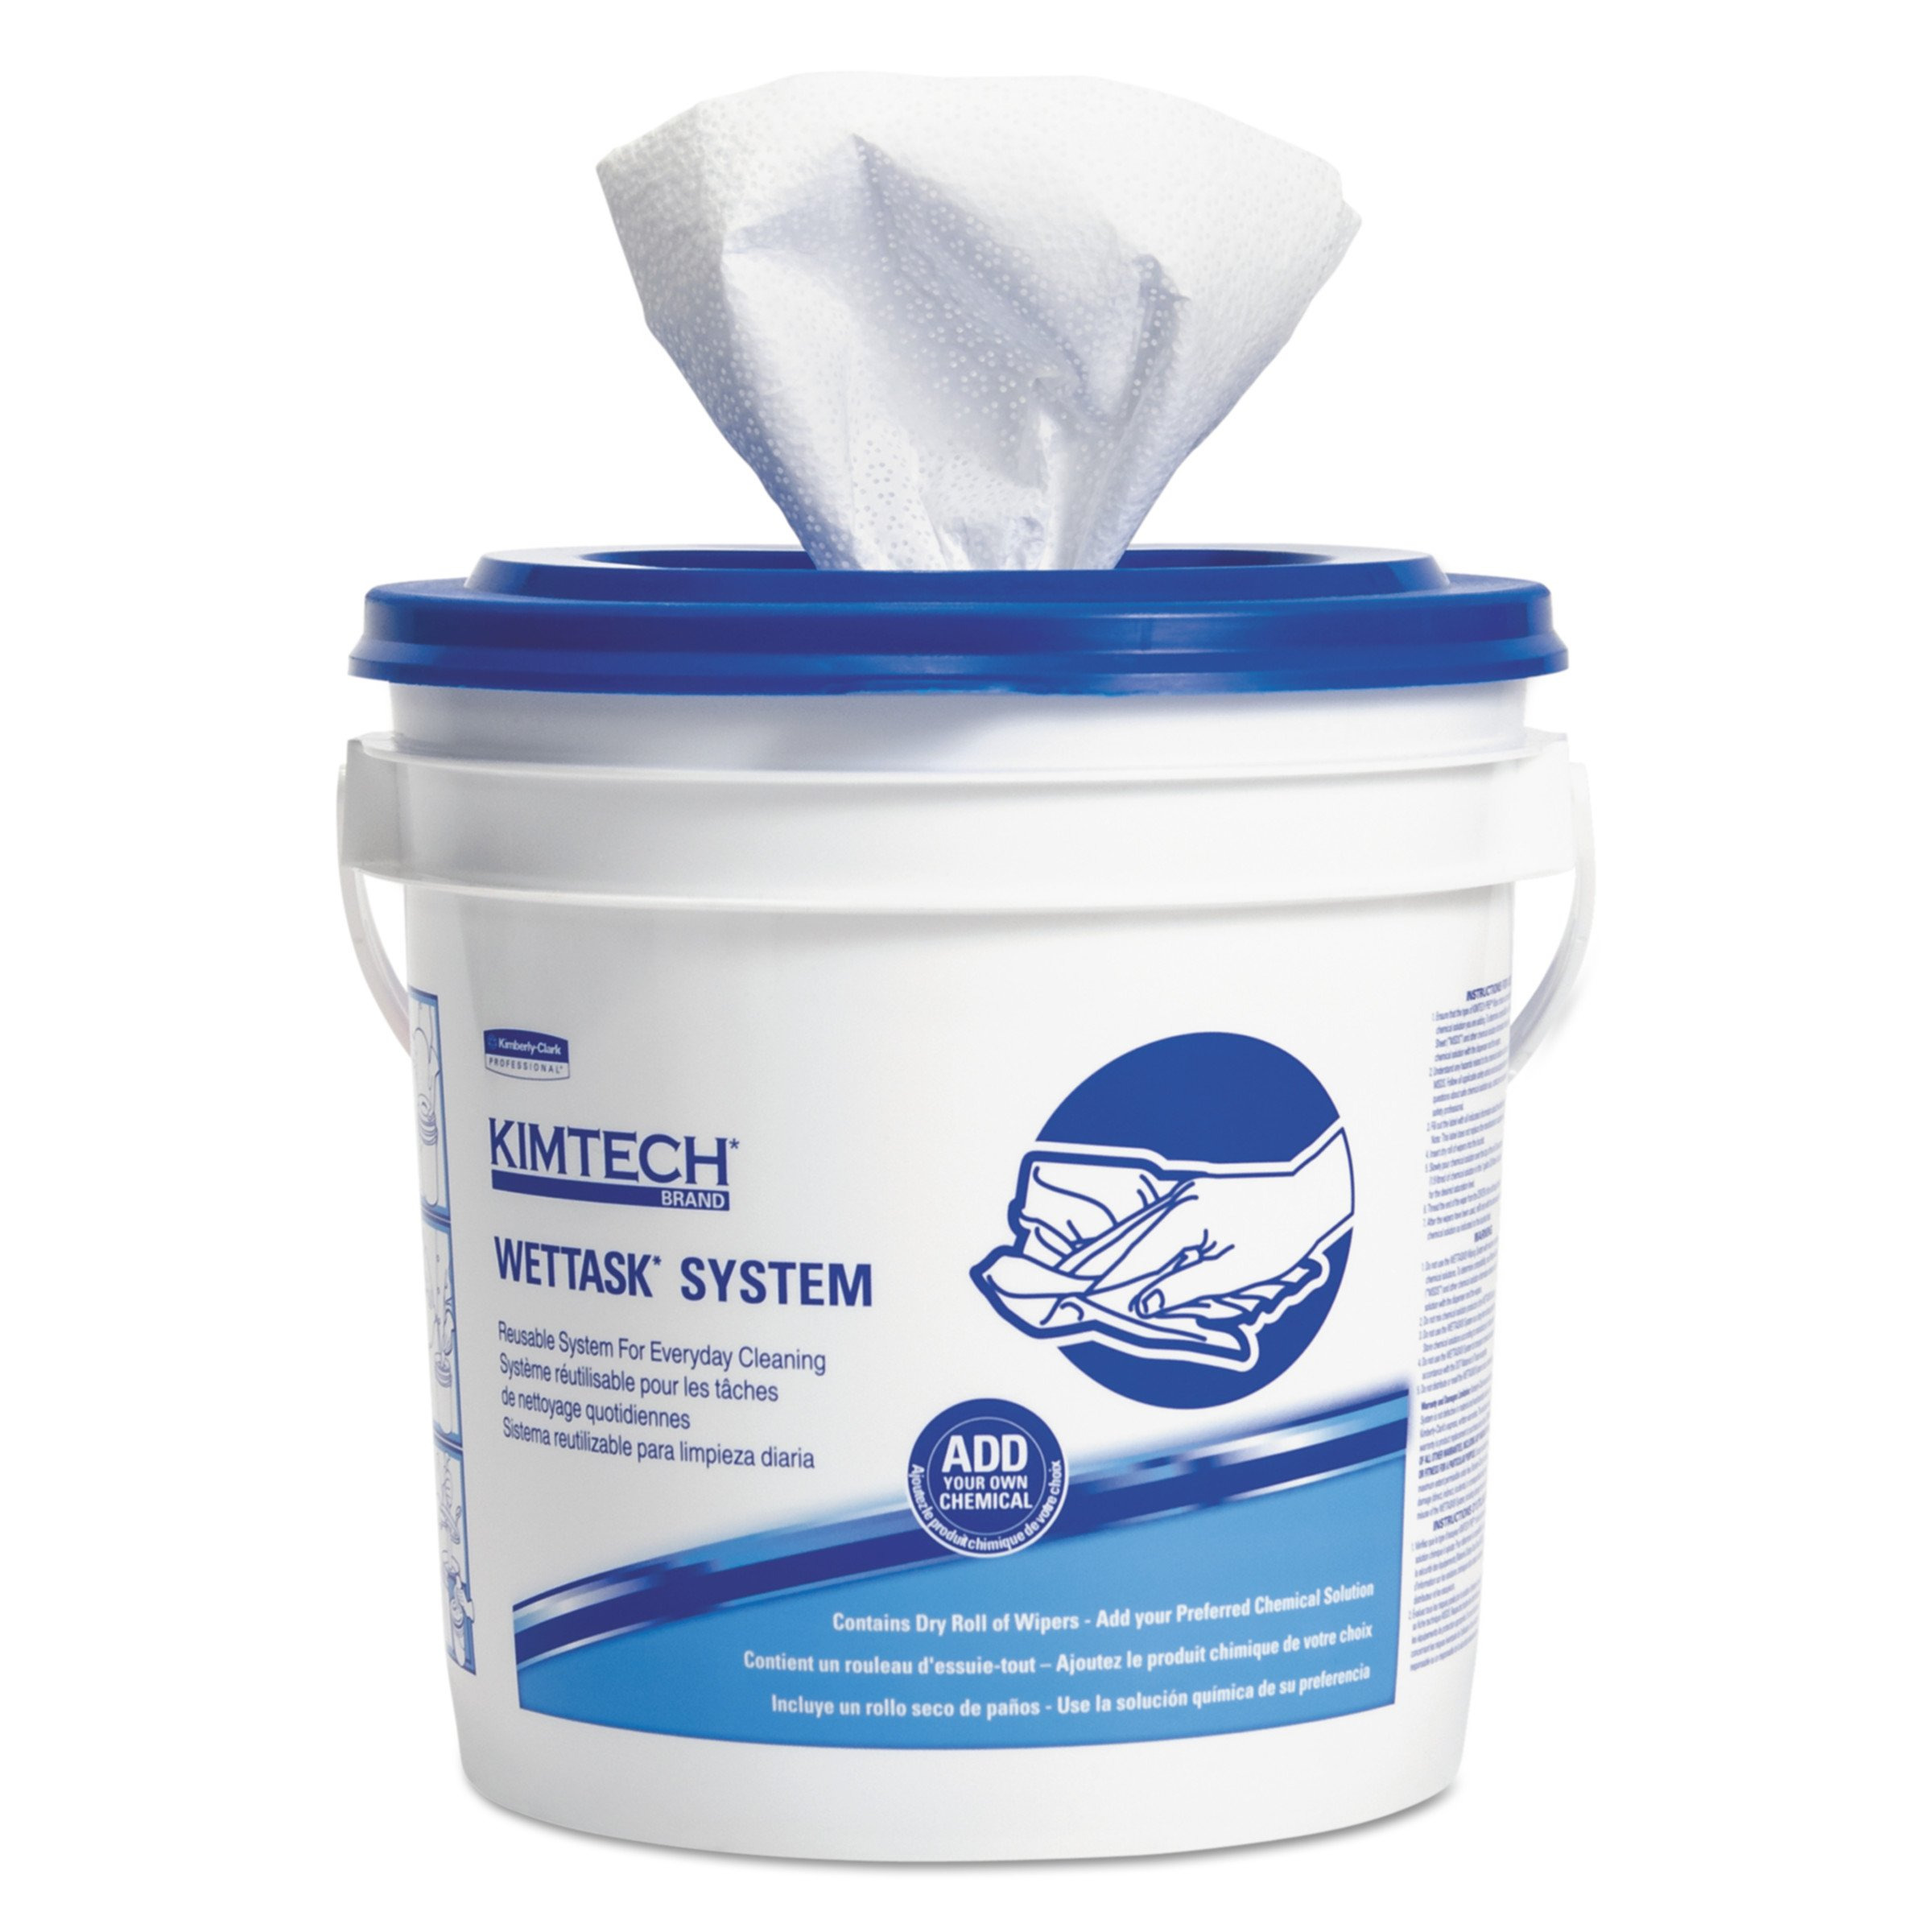 Kimtech 06471 Wipers for Bleach Disinfectants Sanitizers, 12 x 12 1/2, 90 per Roll (Case of 6) by KIMTECH